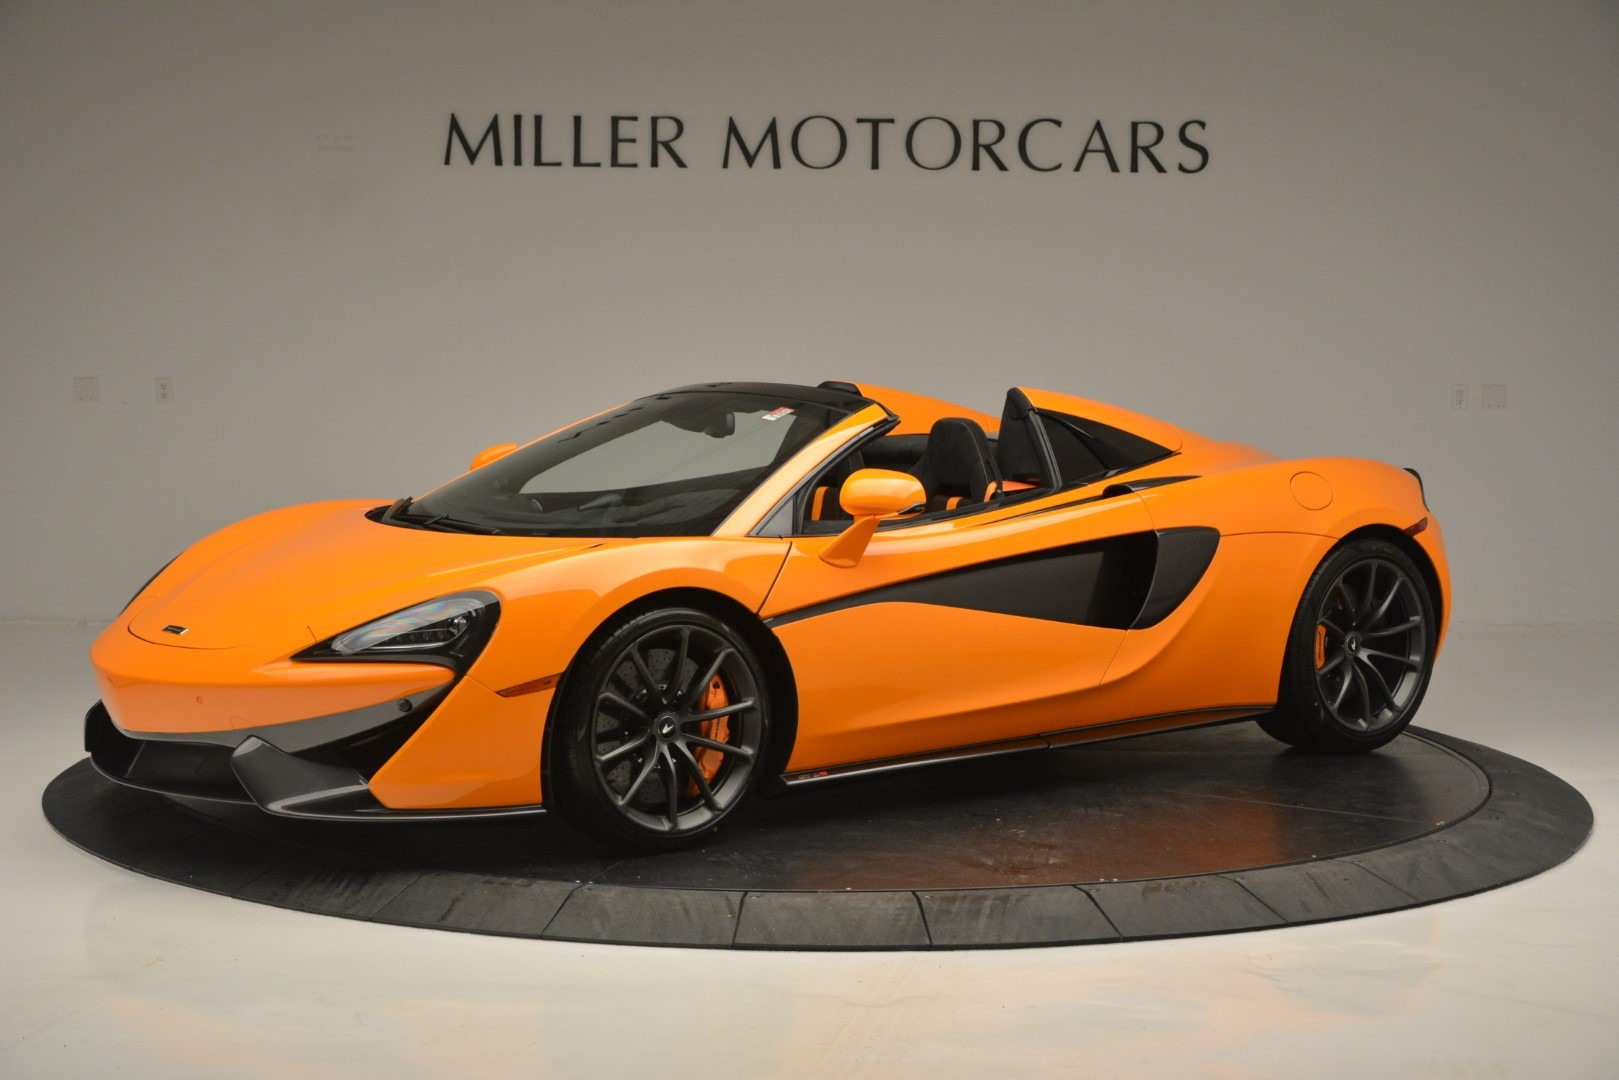 Used 2019 McLaren 570S SPIDER Convertible for sale $240,720 at Maserati of Greenwich in Greenwich CT 06830 1